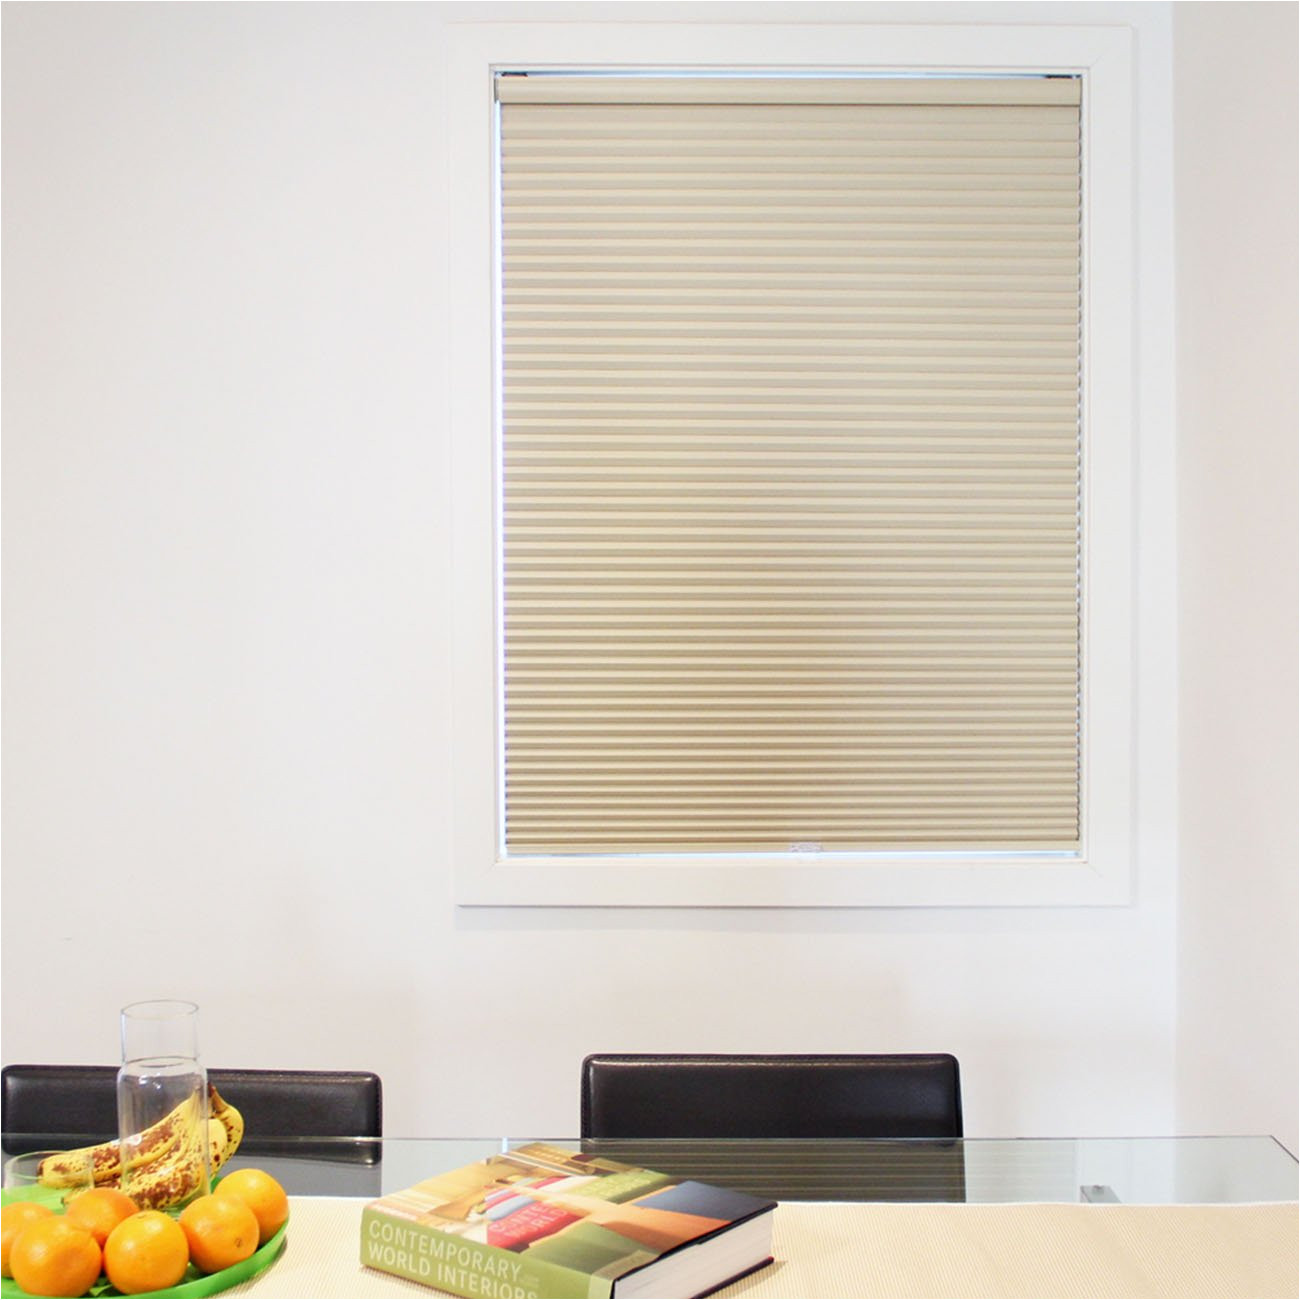 amazon com chicology cordless cellular shade blackout fabric secret tapioca beige 36 x72 home kitchen